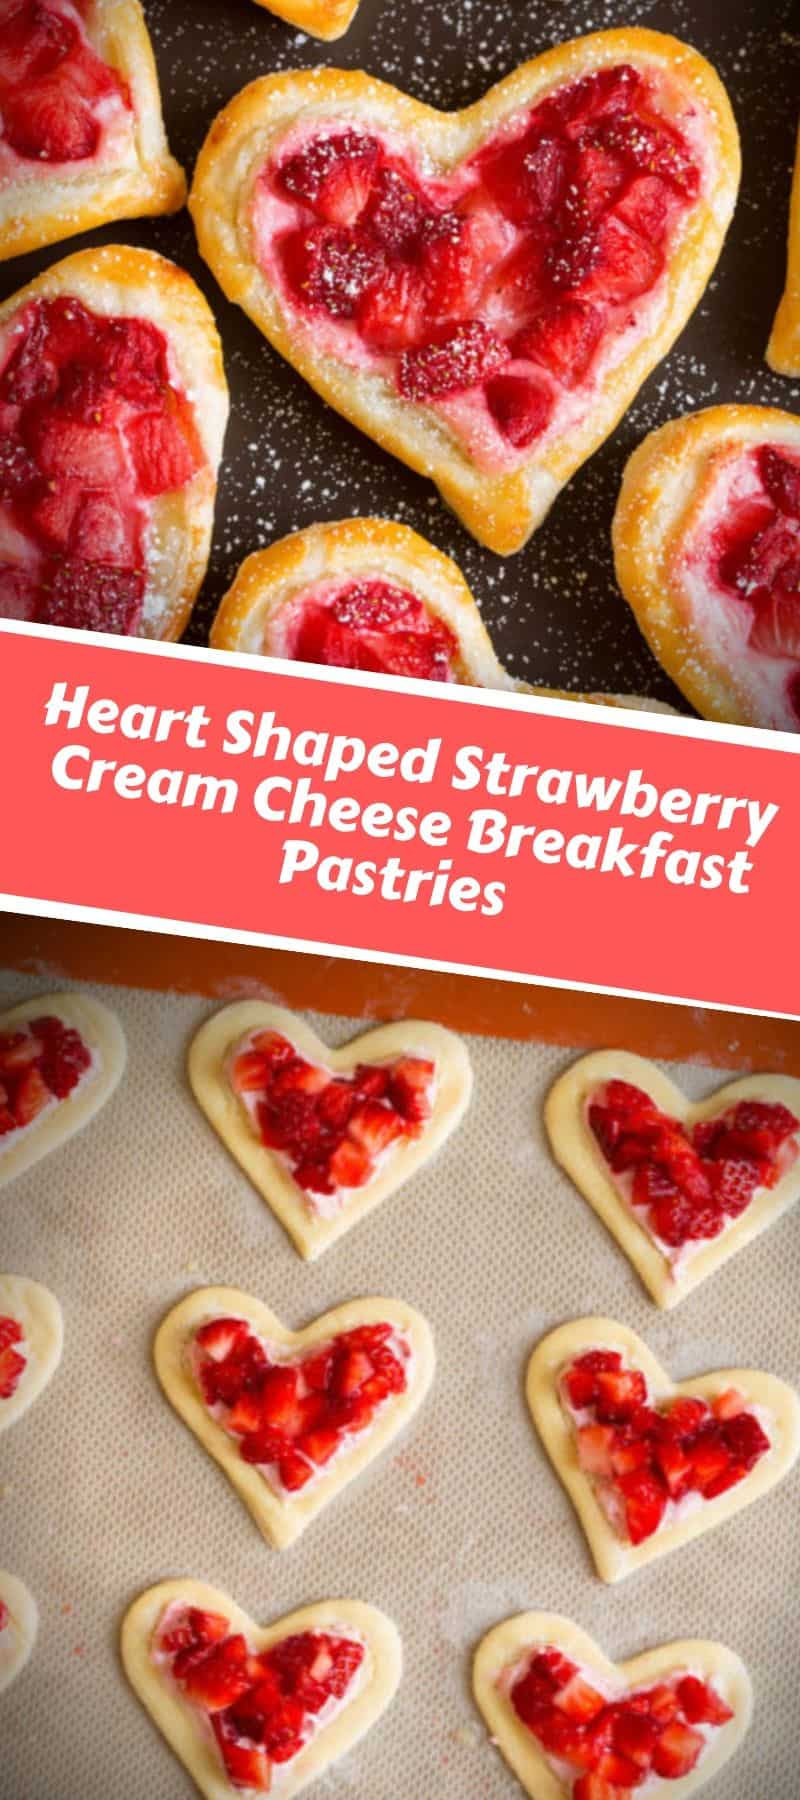 Heart Shaped Strawberry Cream Cheese Breakfast Pastries 3